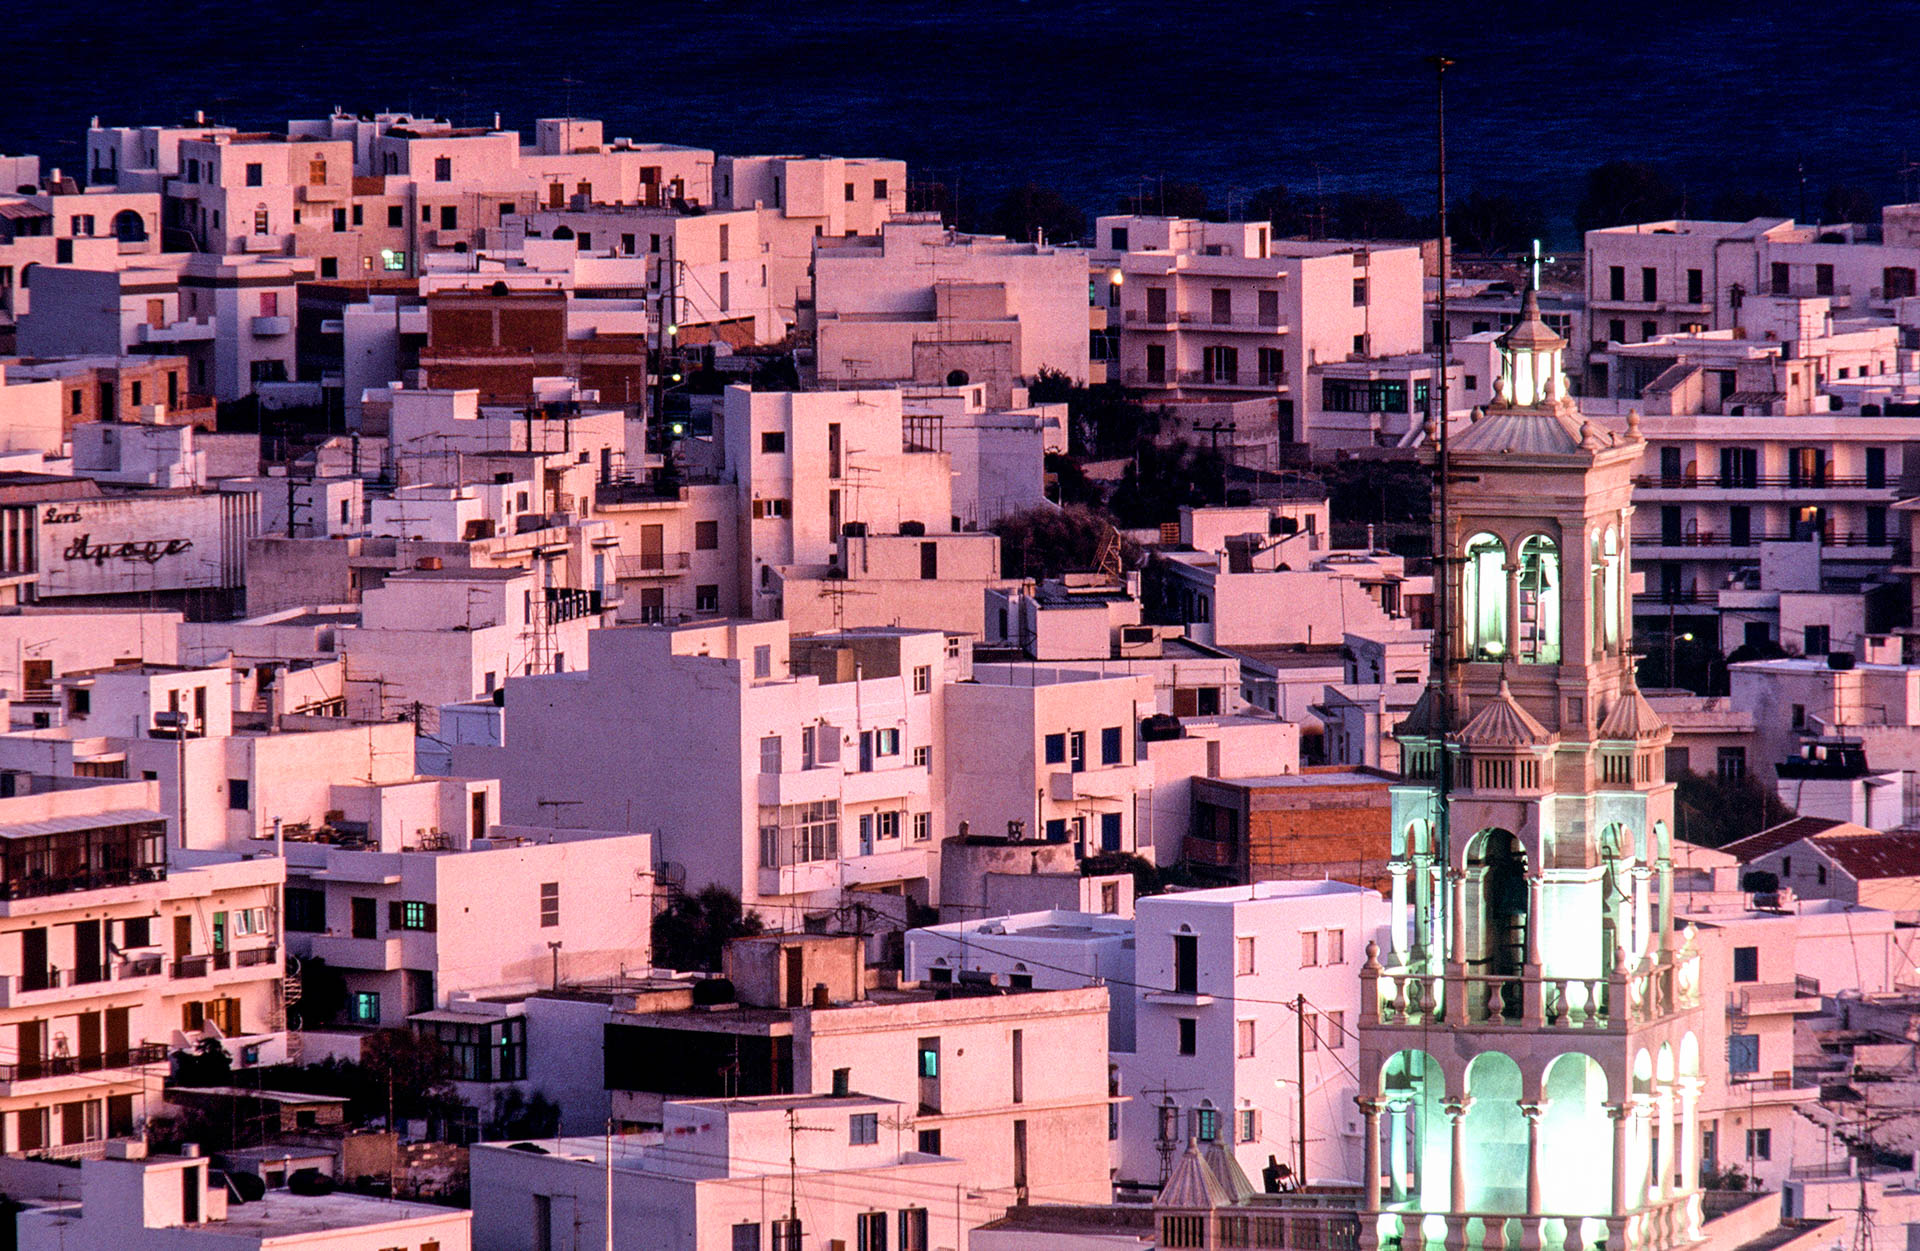 The miracle around the world: Tinos, a long shot of the village.